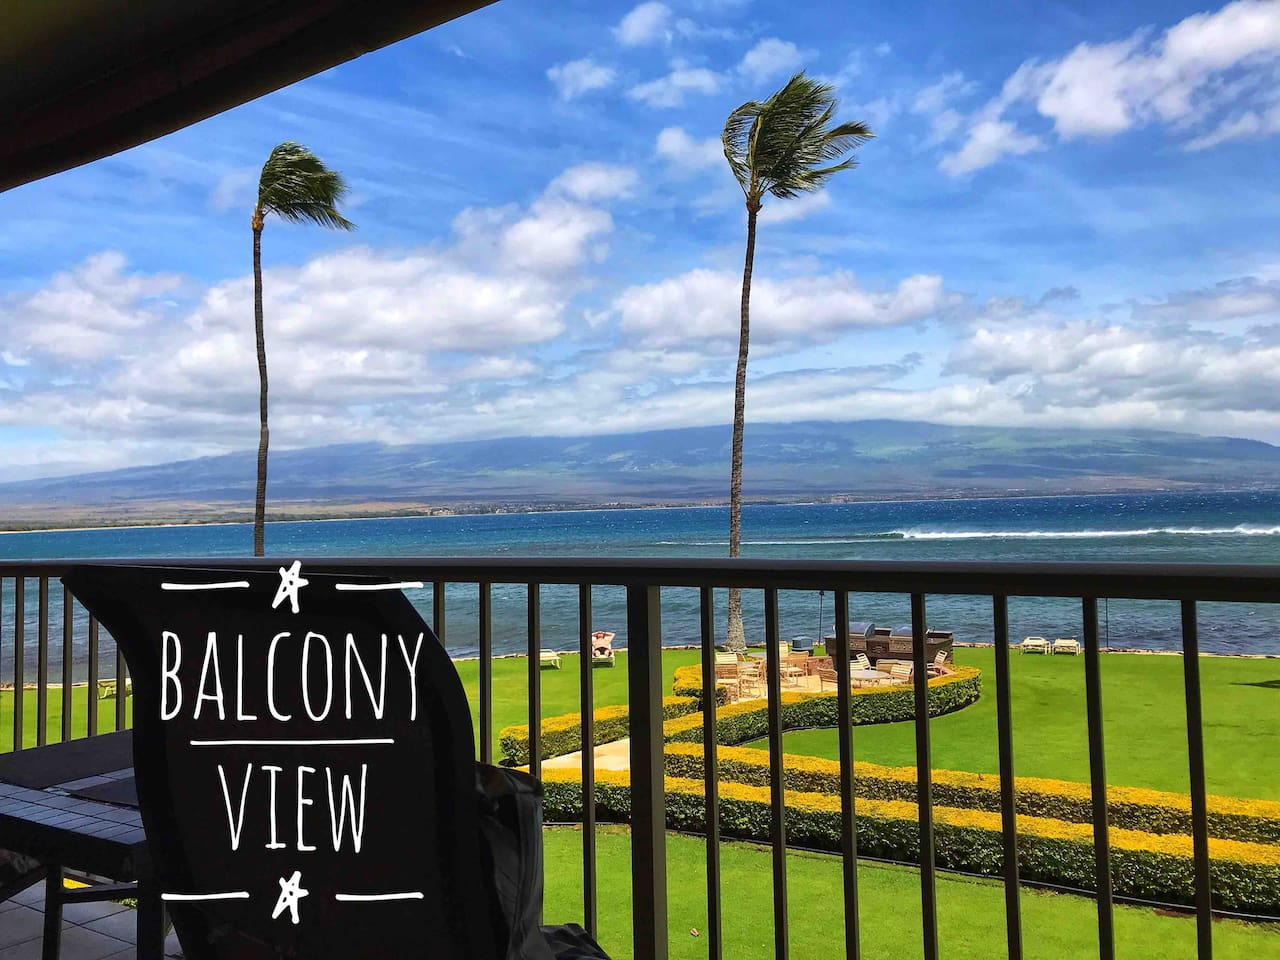 Balcony View - Panoramic views of South Maui, Haleakala, & West Maui Mountains. Fantastic spot to watch the famous Maui sunrise, sunset, people surfing, watching the honu (green sea turtle), and whales breaching during whale season!